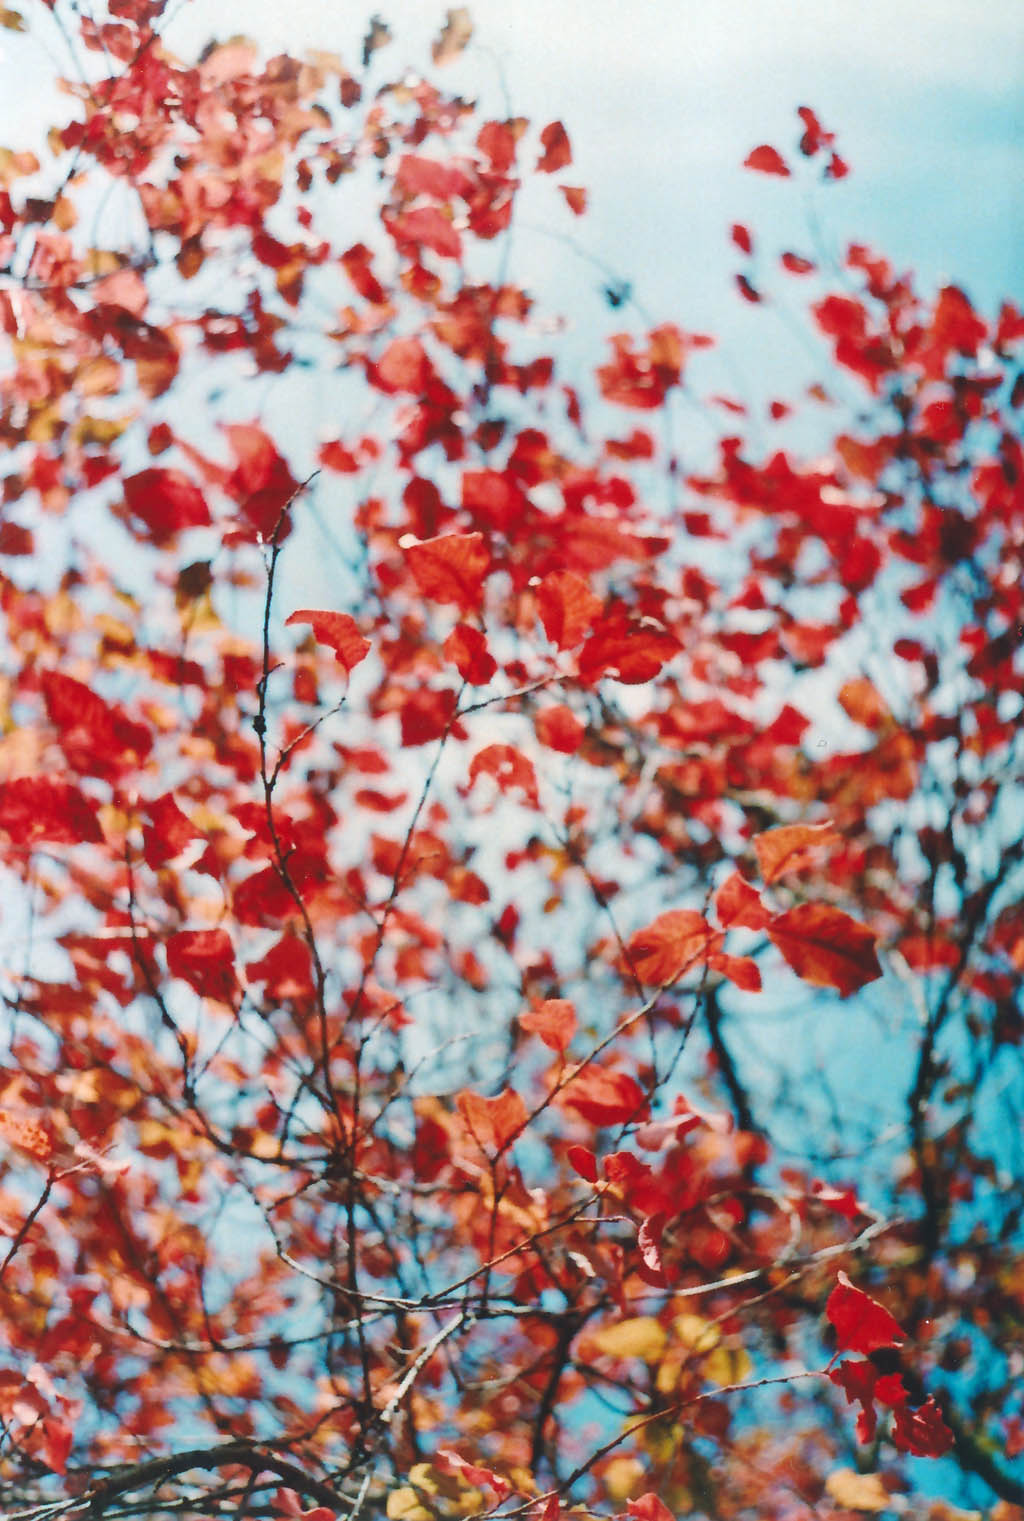 // Roter Herbst //